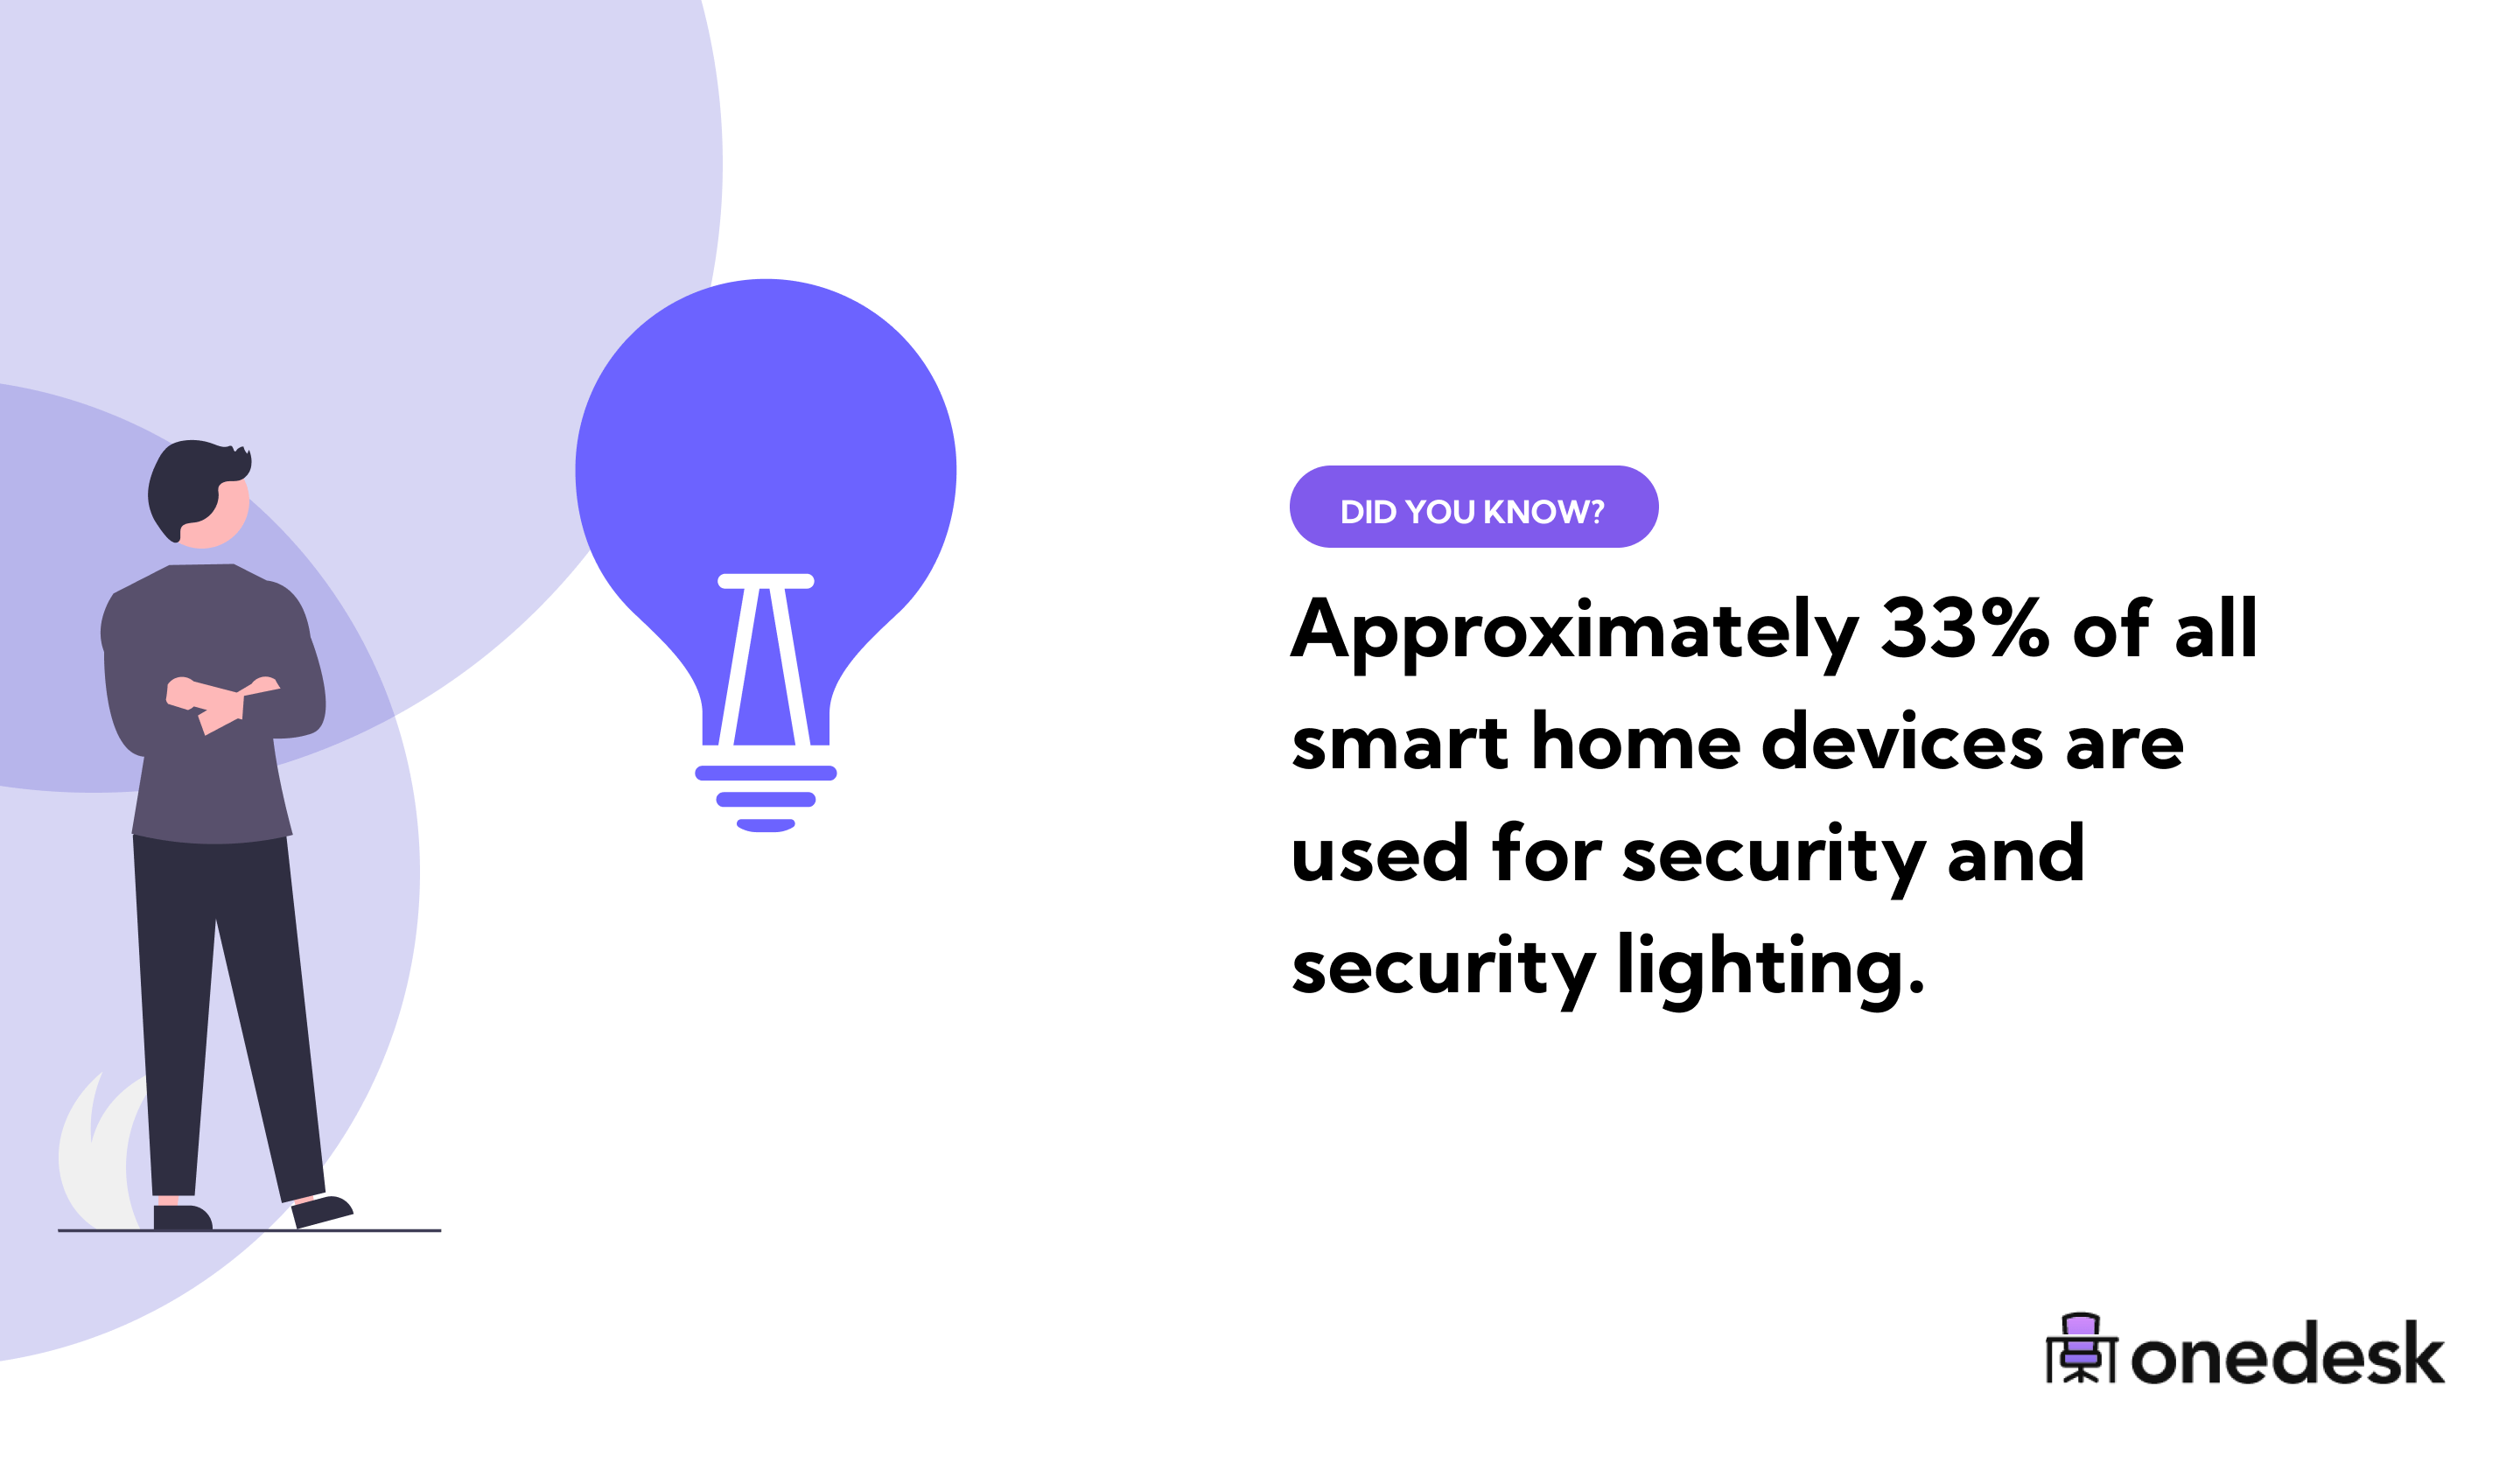 33% of smart home devices are used for security